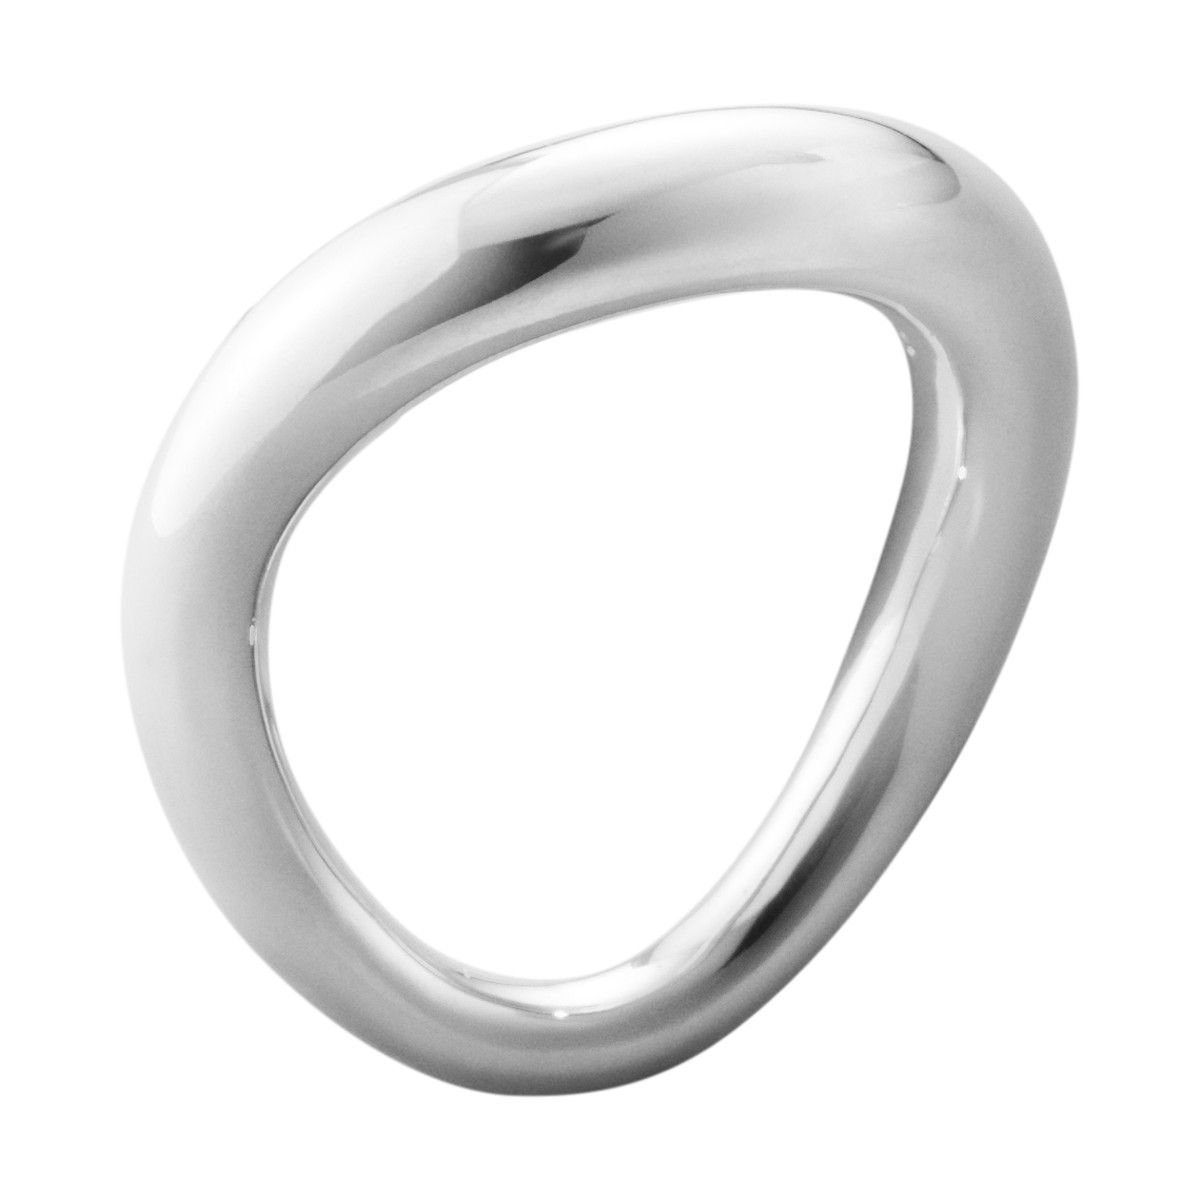 Georg Jensen OFFSPRING sølv ring - 10013245 Sølv 3